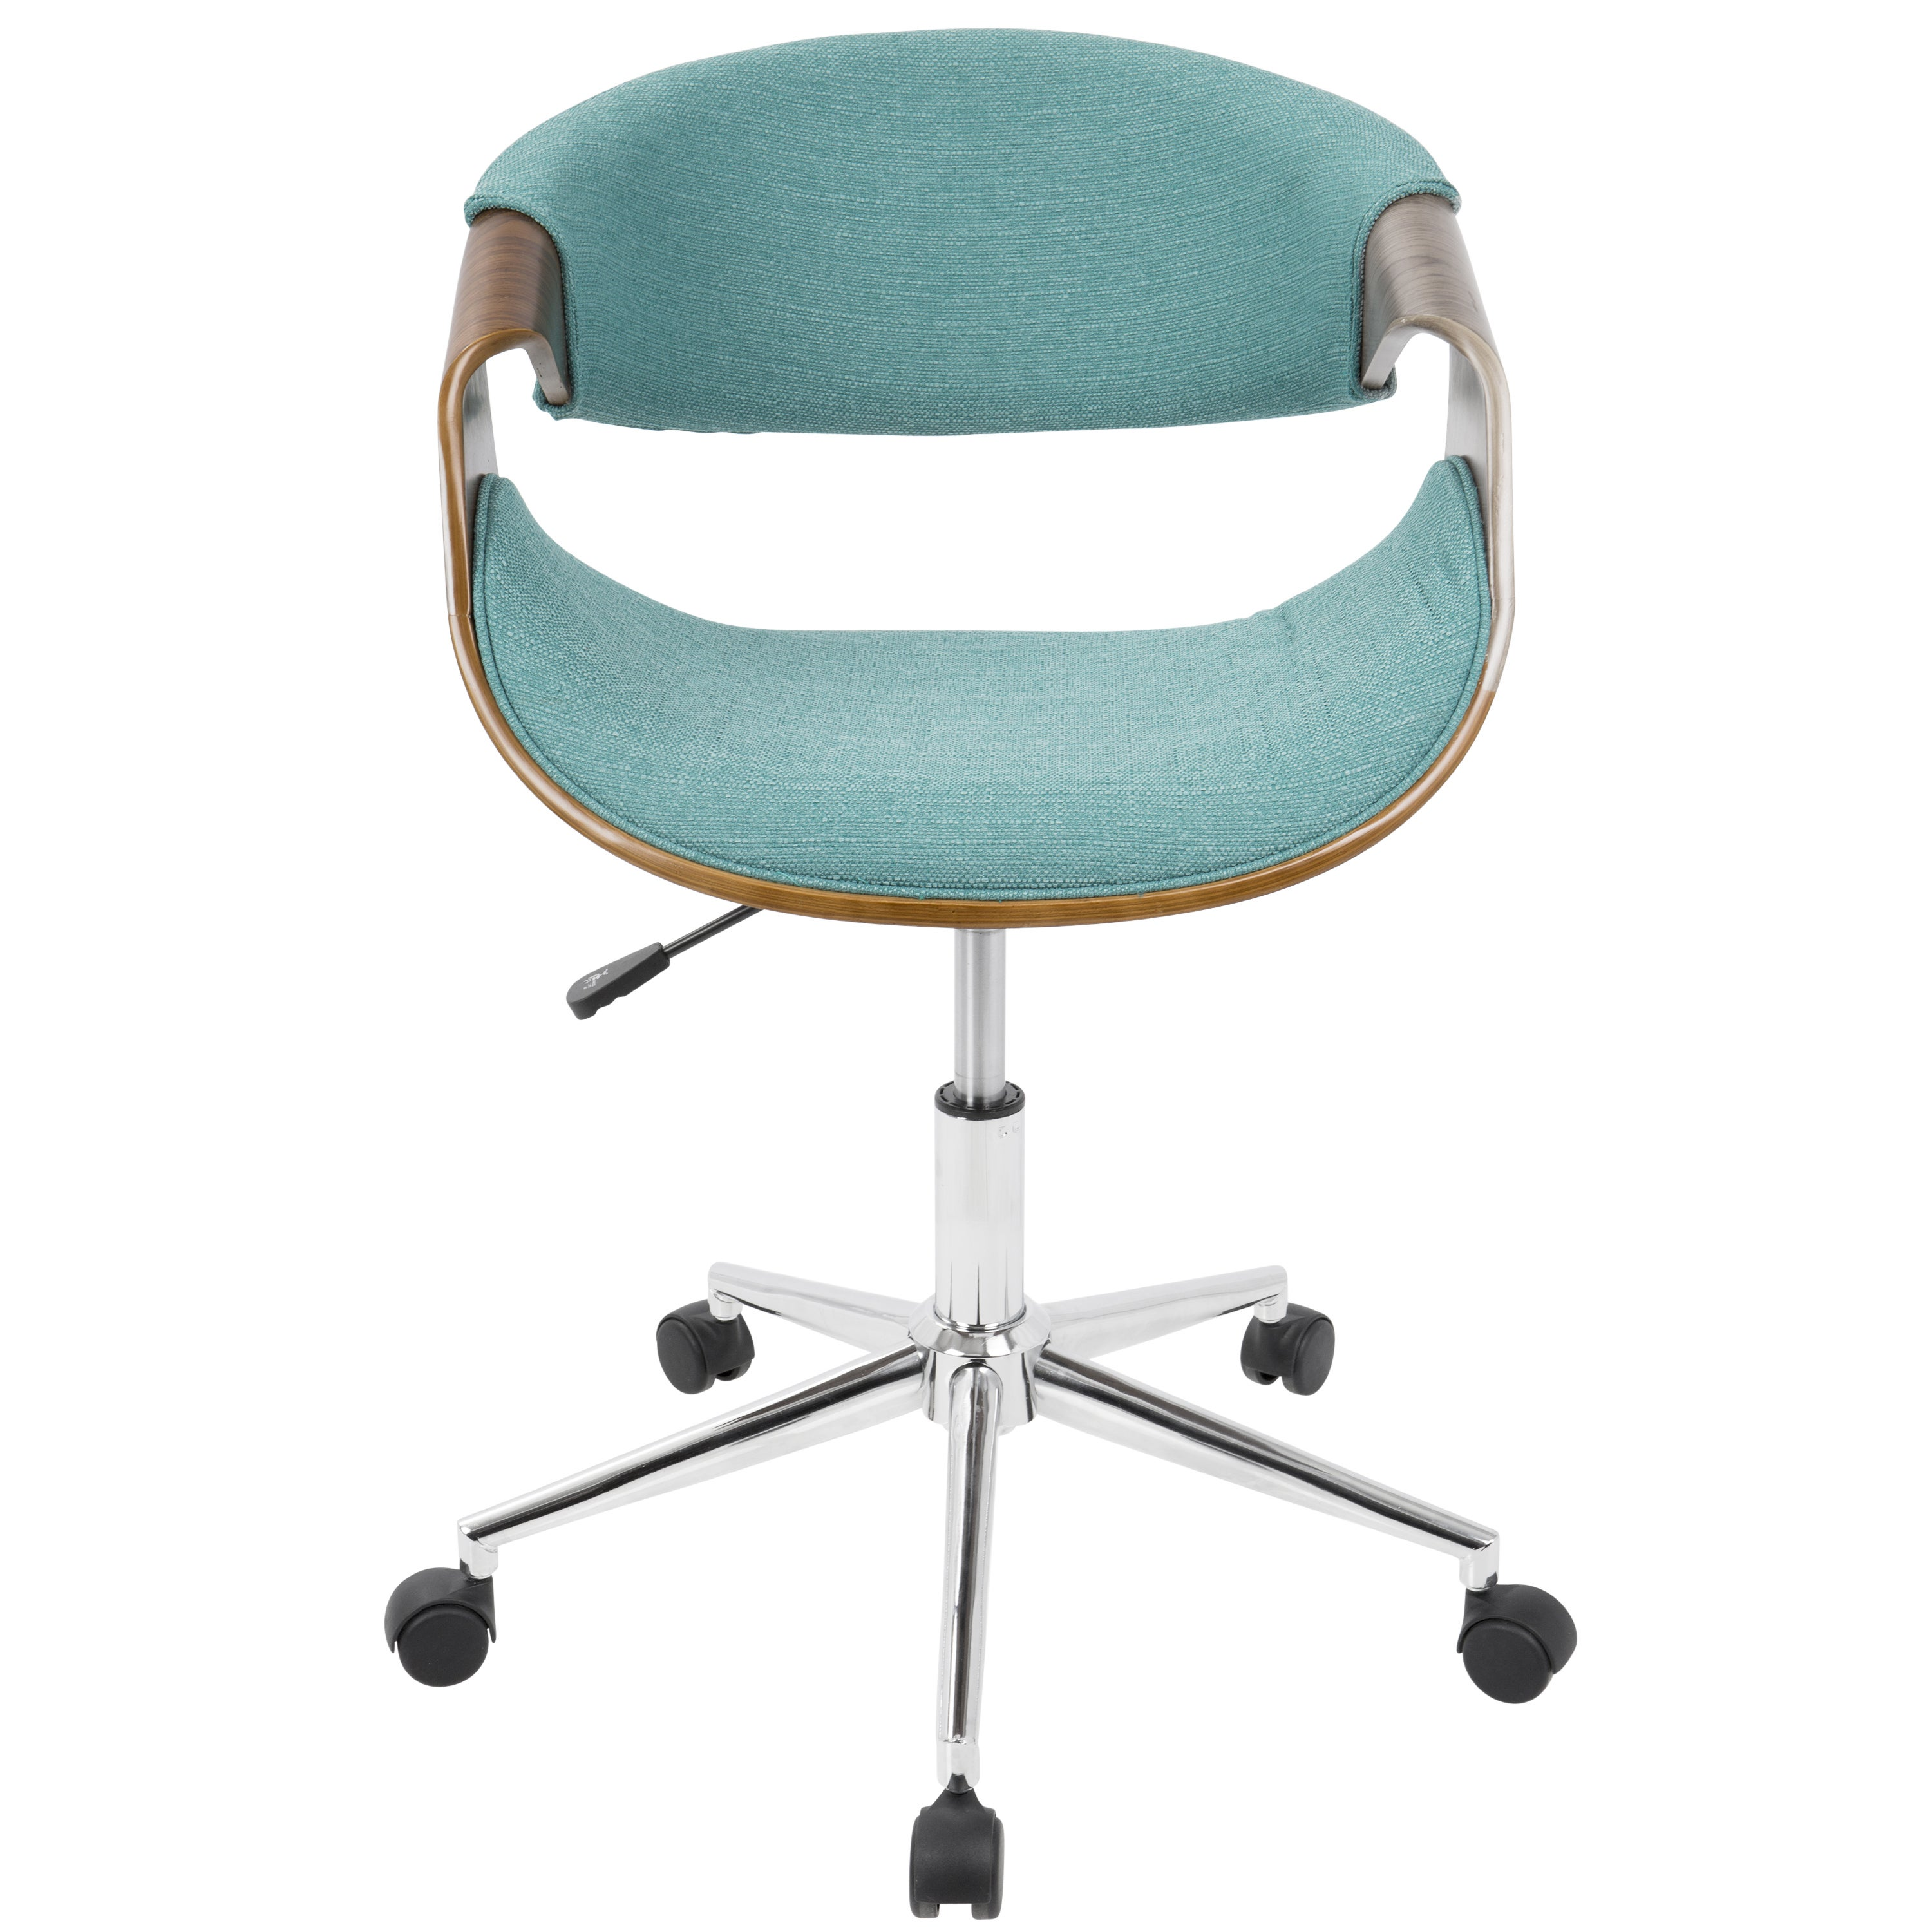 Shop Curvo Mid Century Modern Office Chair In Walnut Wood And Woven Fabric    Free Shipping Today   Overstock.com   14163367